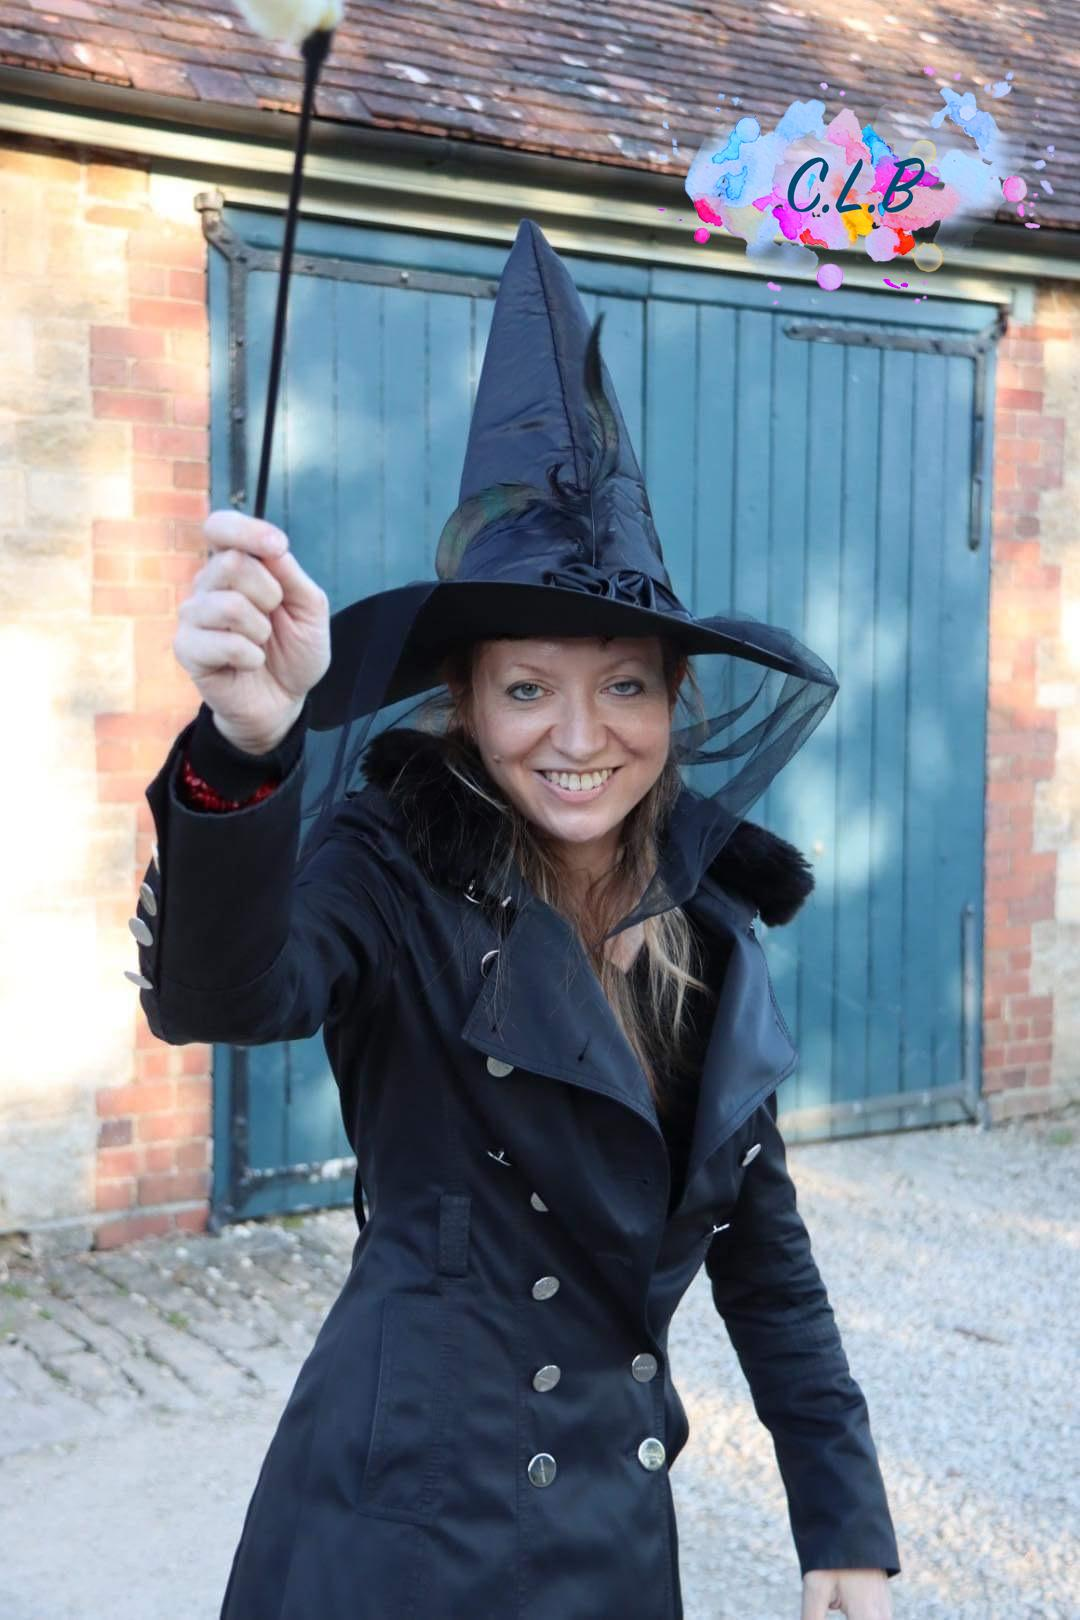 Caroline as a witch in Lacock village